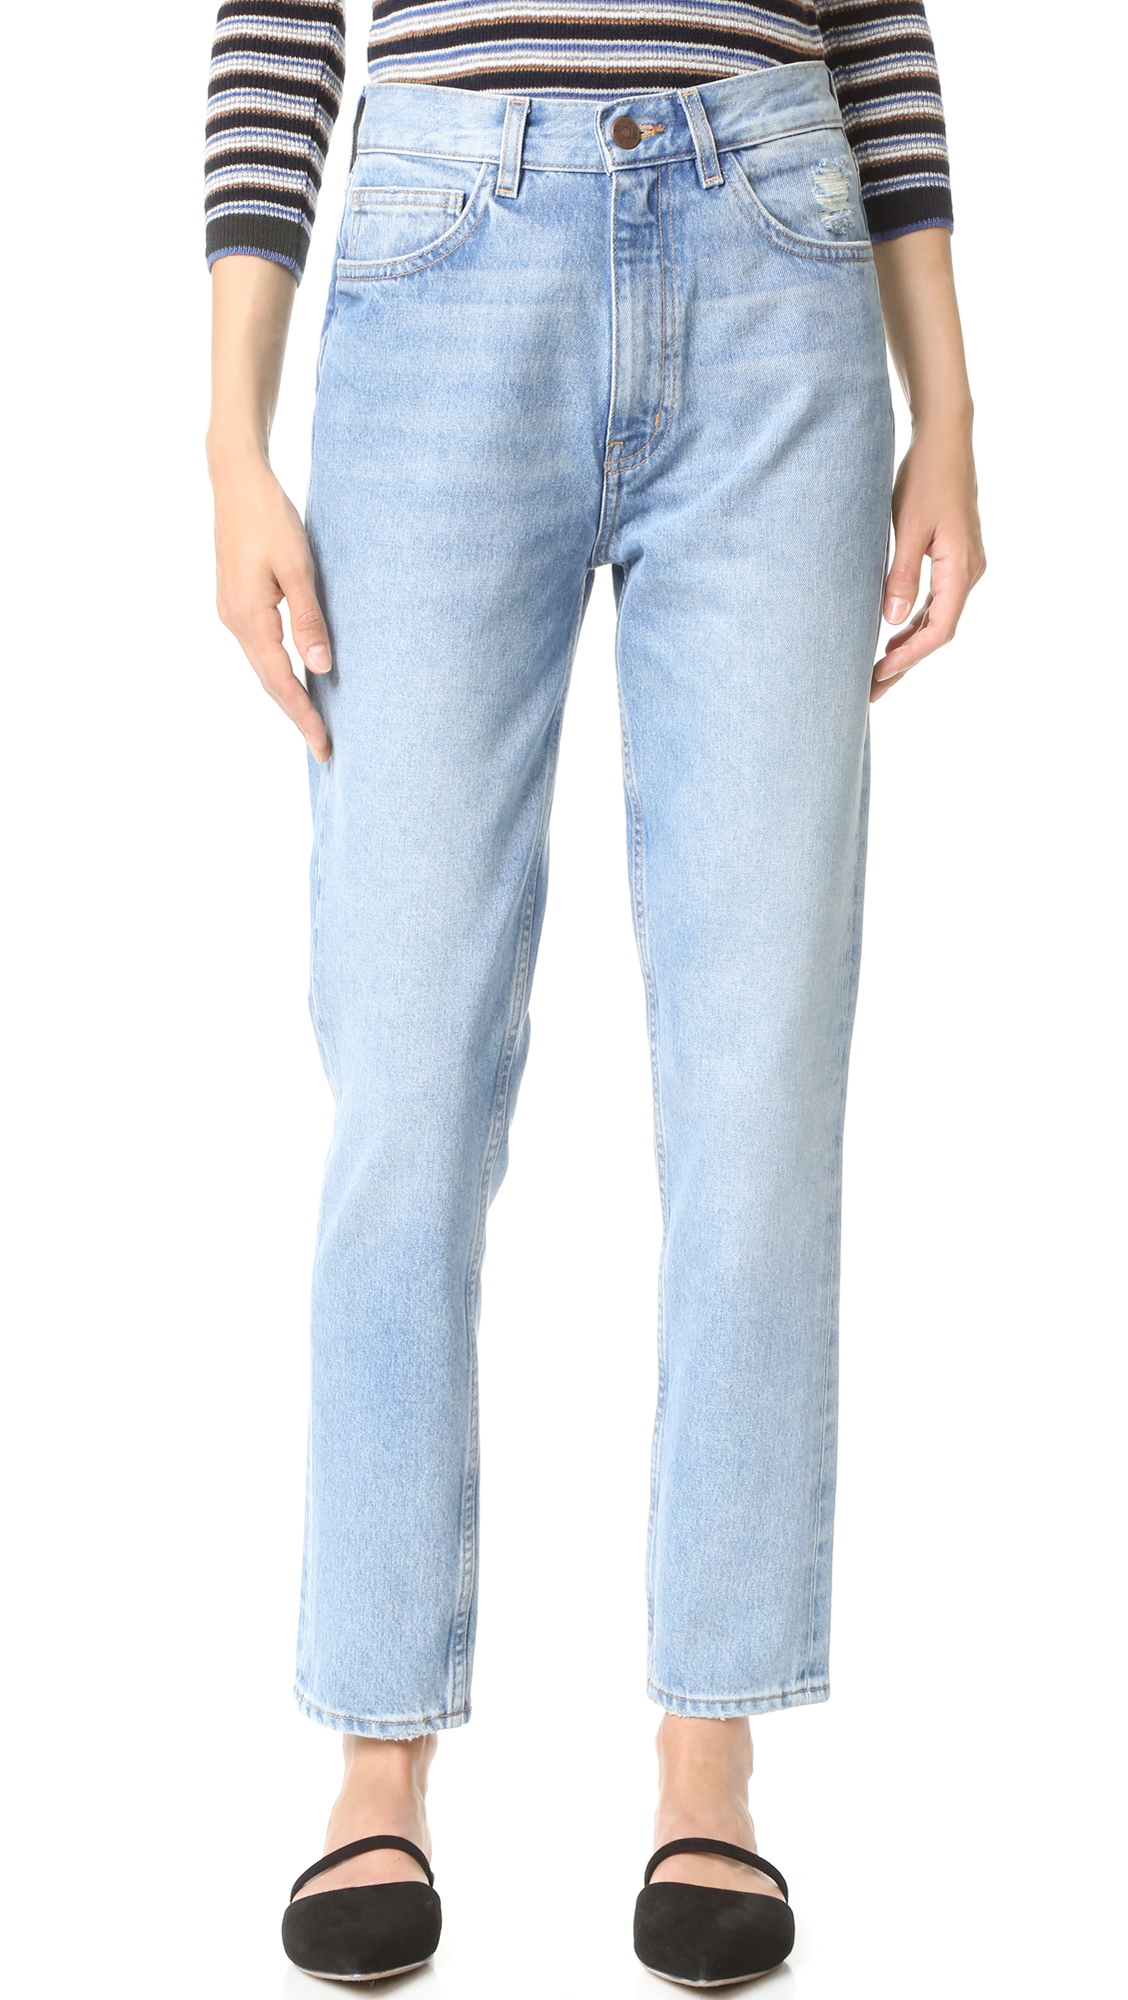 M.I.H Jeans Mimi High Rise Skinny Jeans - Shan